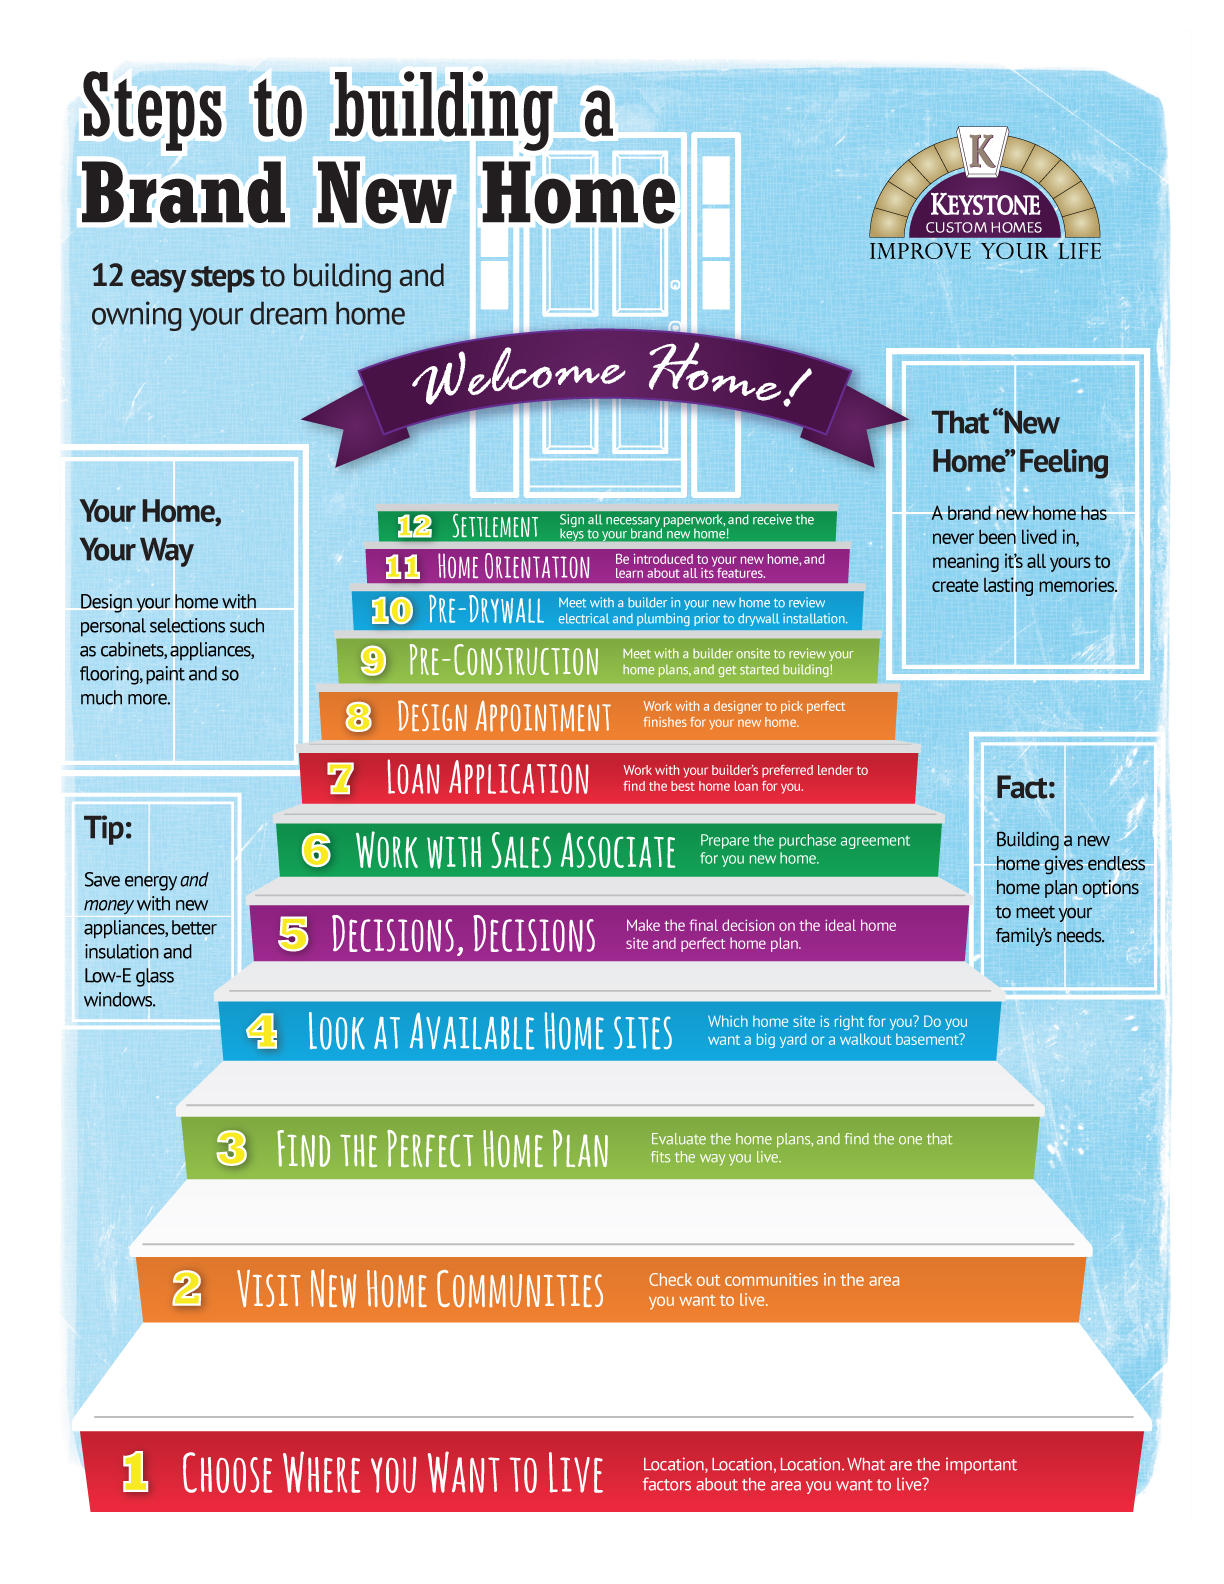 Steps to building a brand new homes Infographic